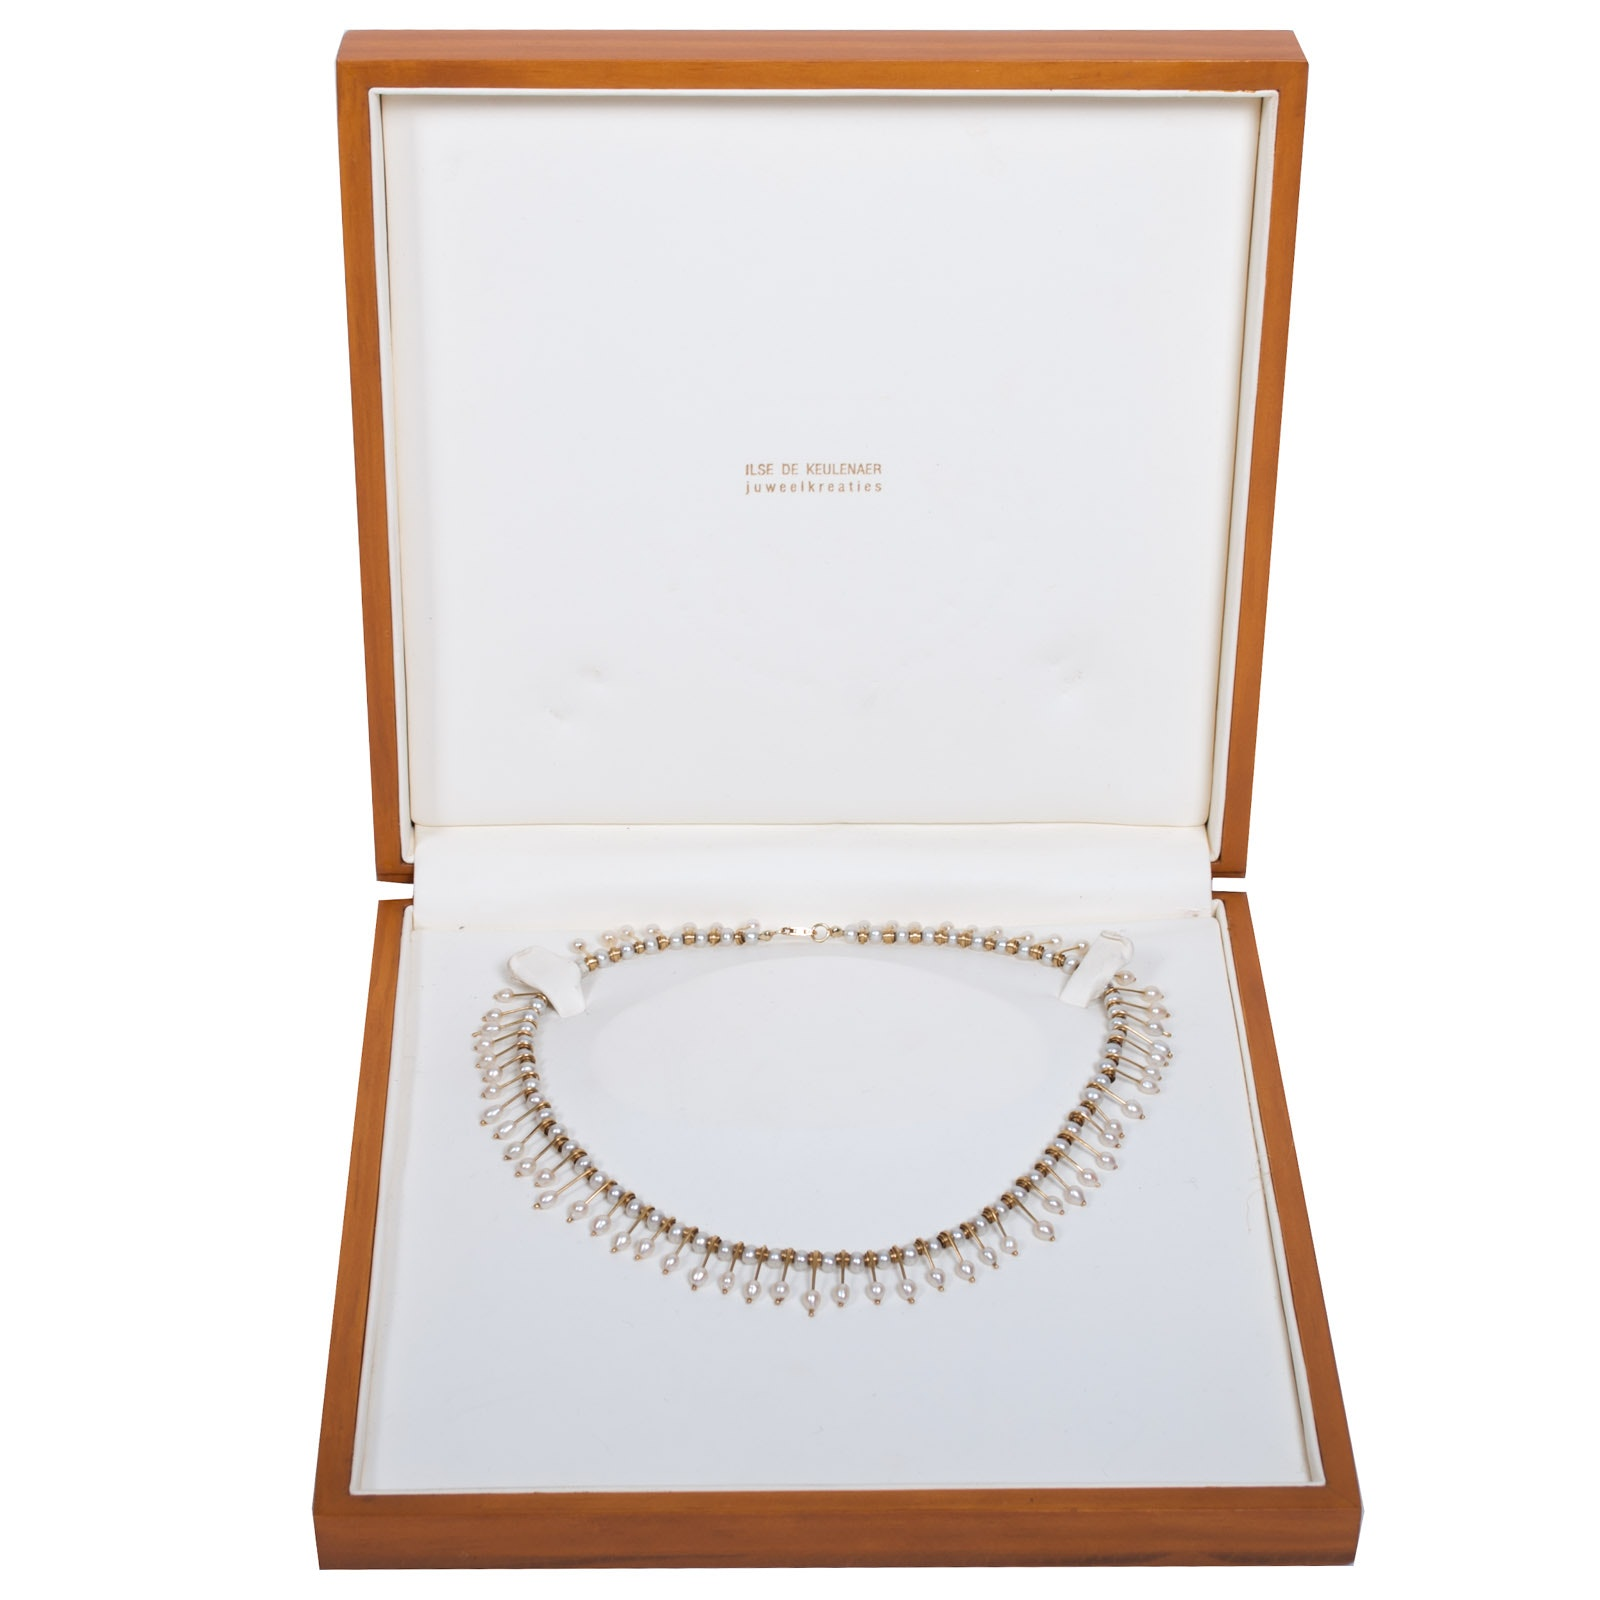 Ilse de Keulenaer 18K Yellow Gold and Cultured Pearl Collar Necklace